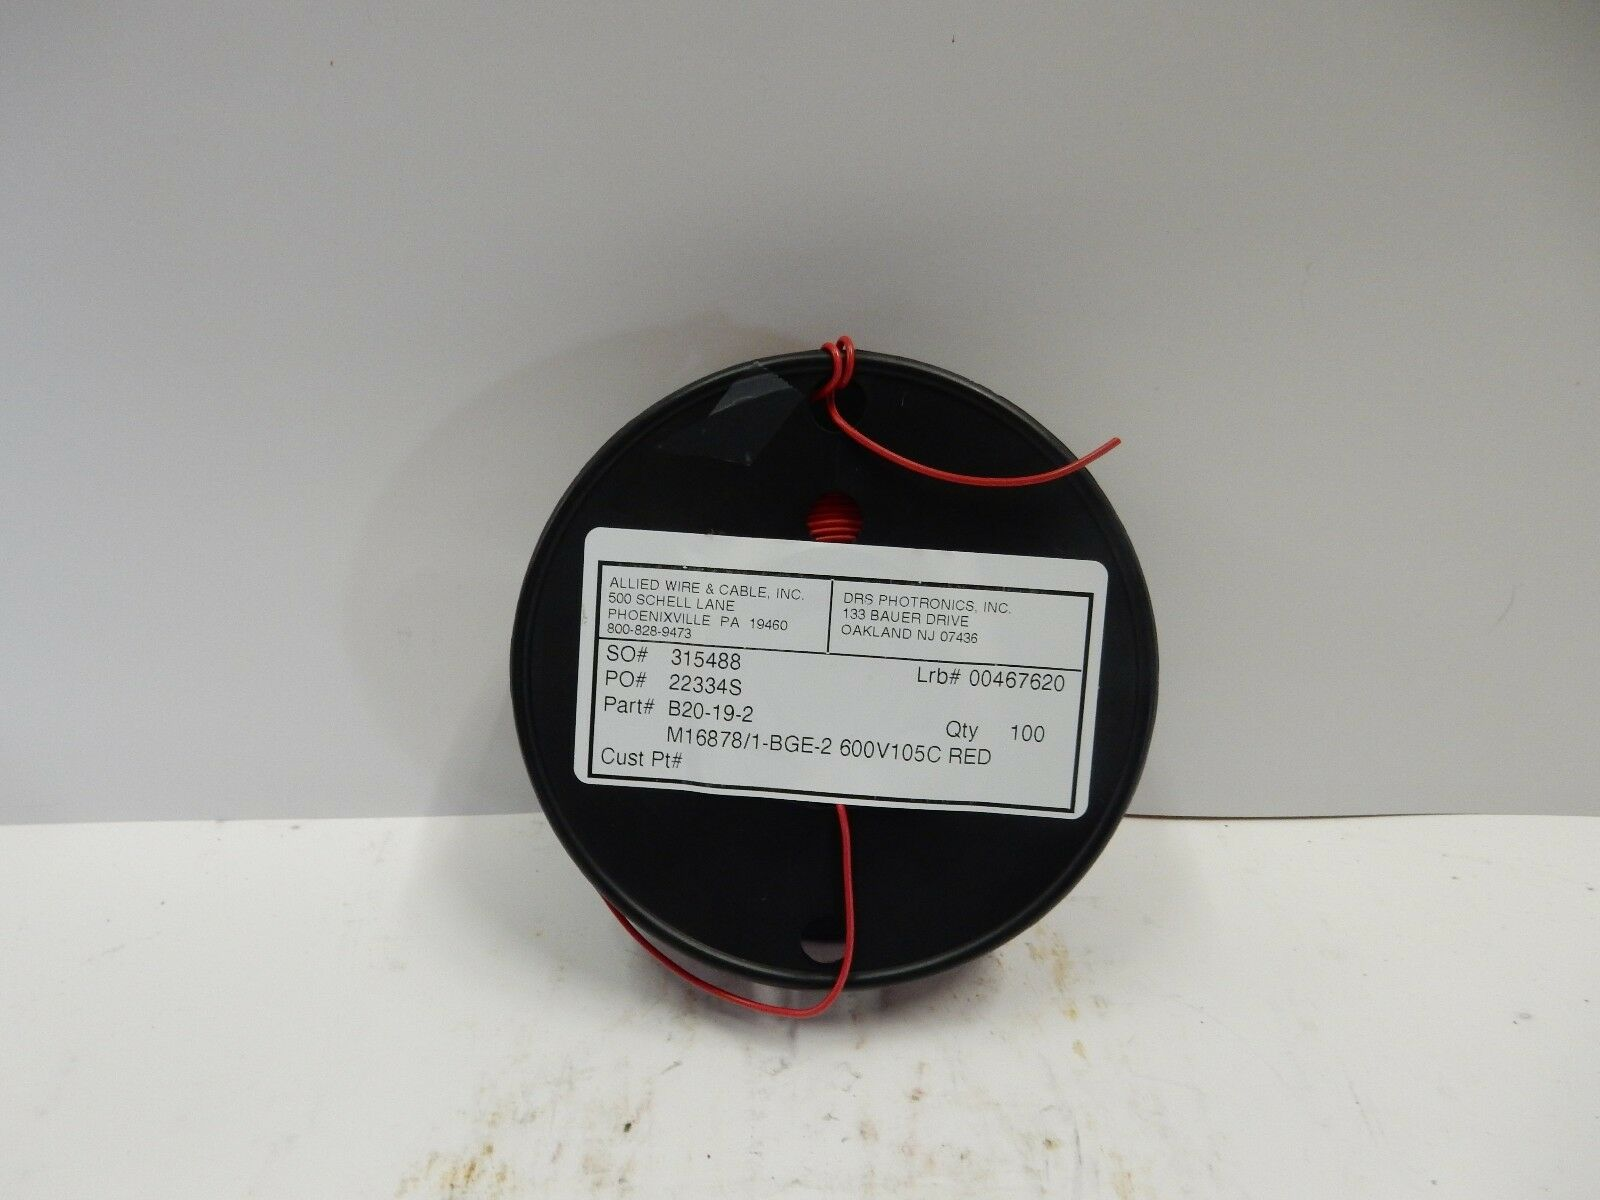 AWC MIL-SPEC WIRE M16878/1-Bge-2 20 Awg 100Ft. 600V 105C Red New ...